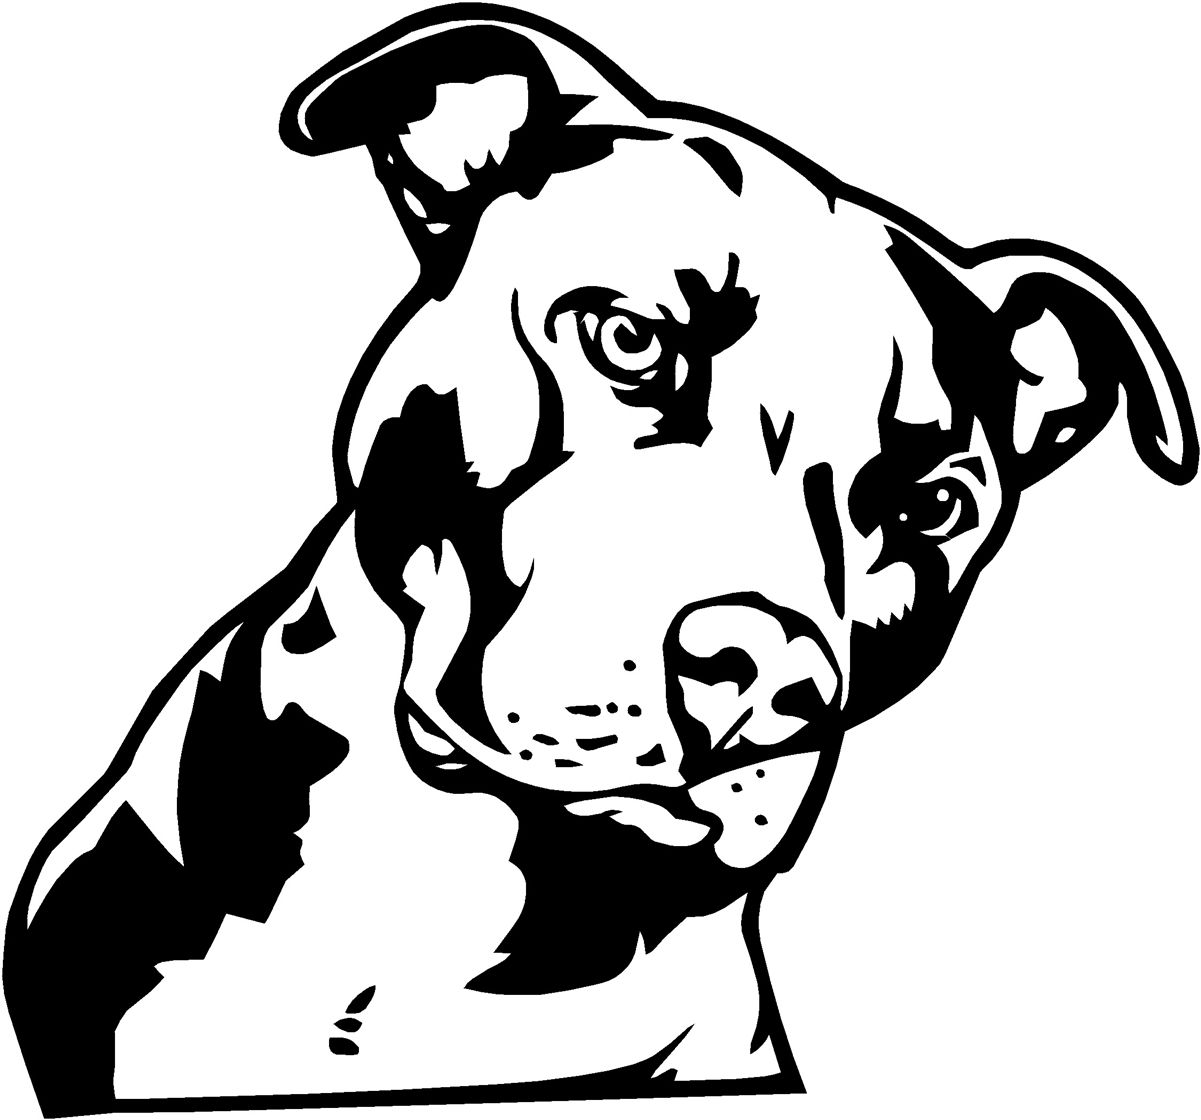 Pitbull Puppy clipart #4, Download drawings